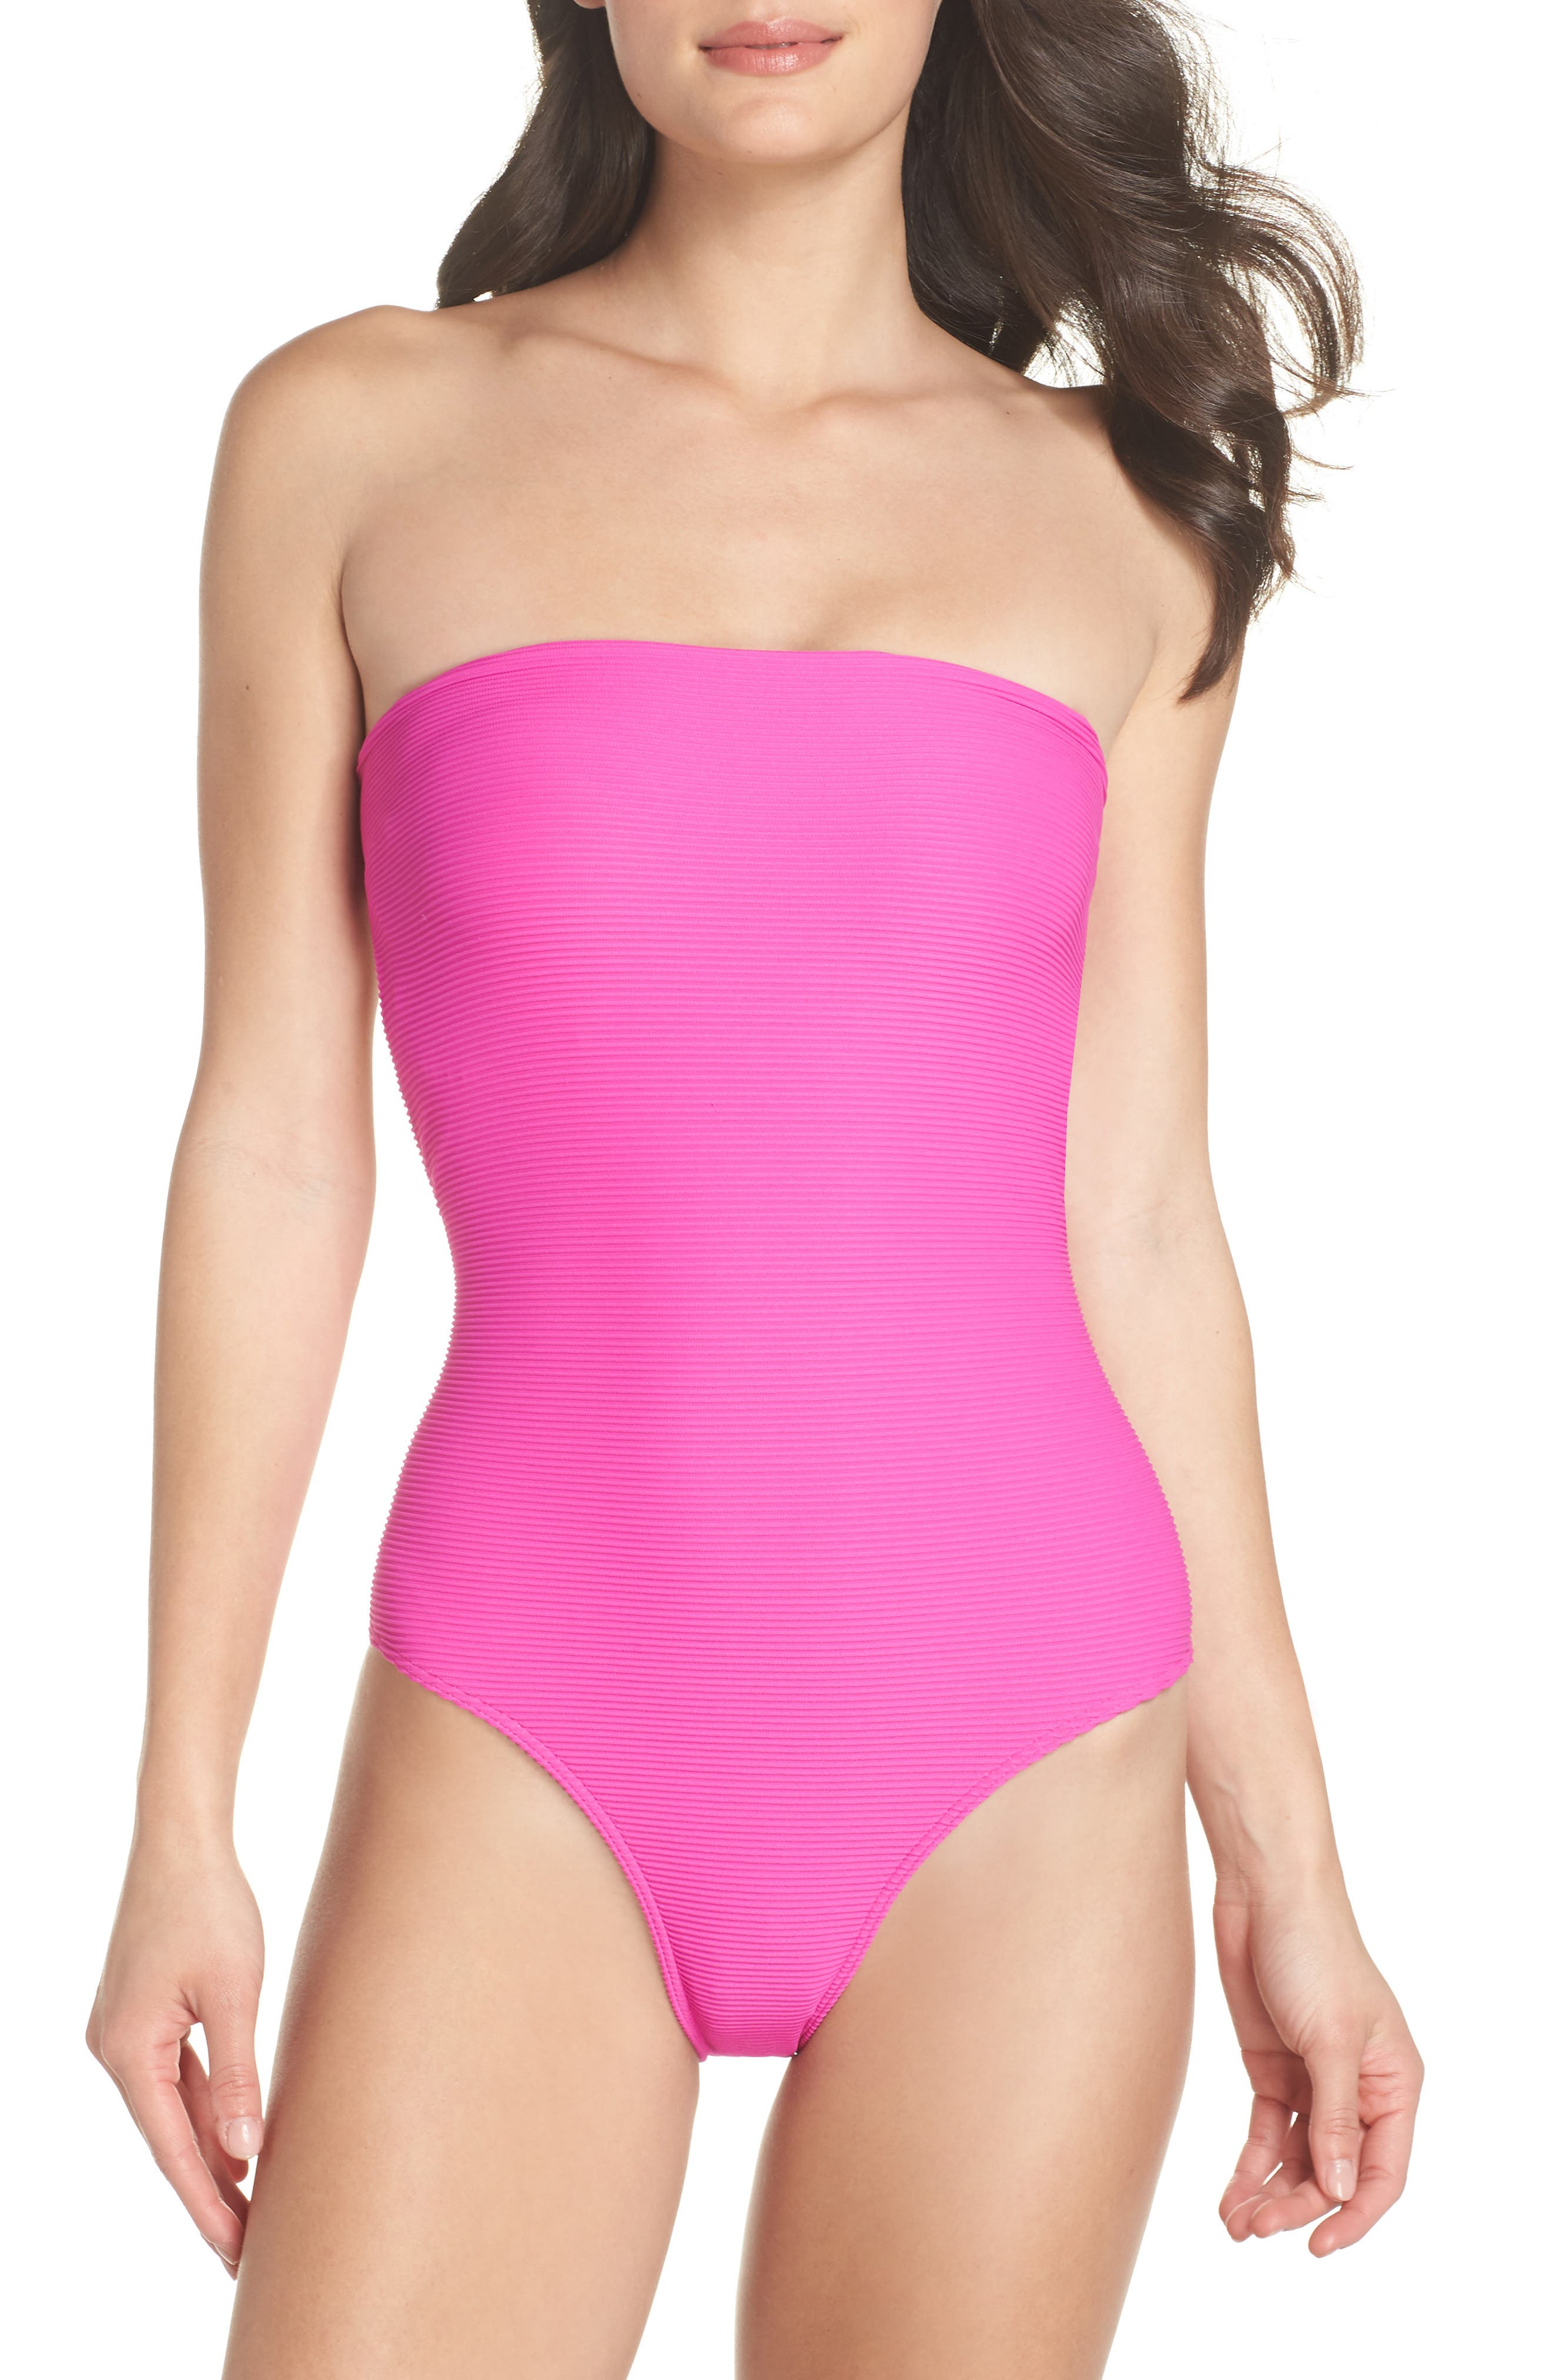 Tanlines Strapless One-Piece Swimsuit,                         Main,                         color, Rebel Pink